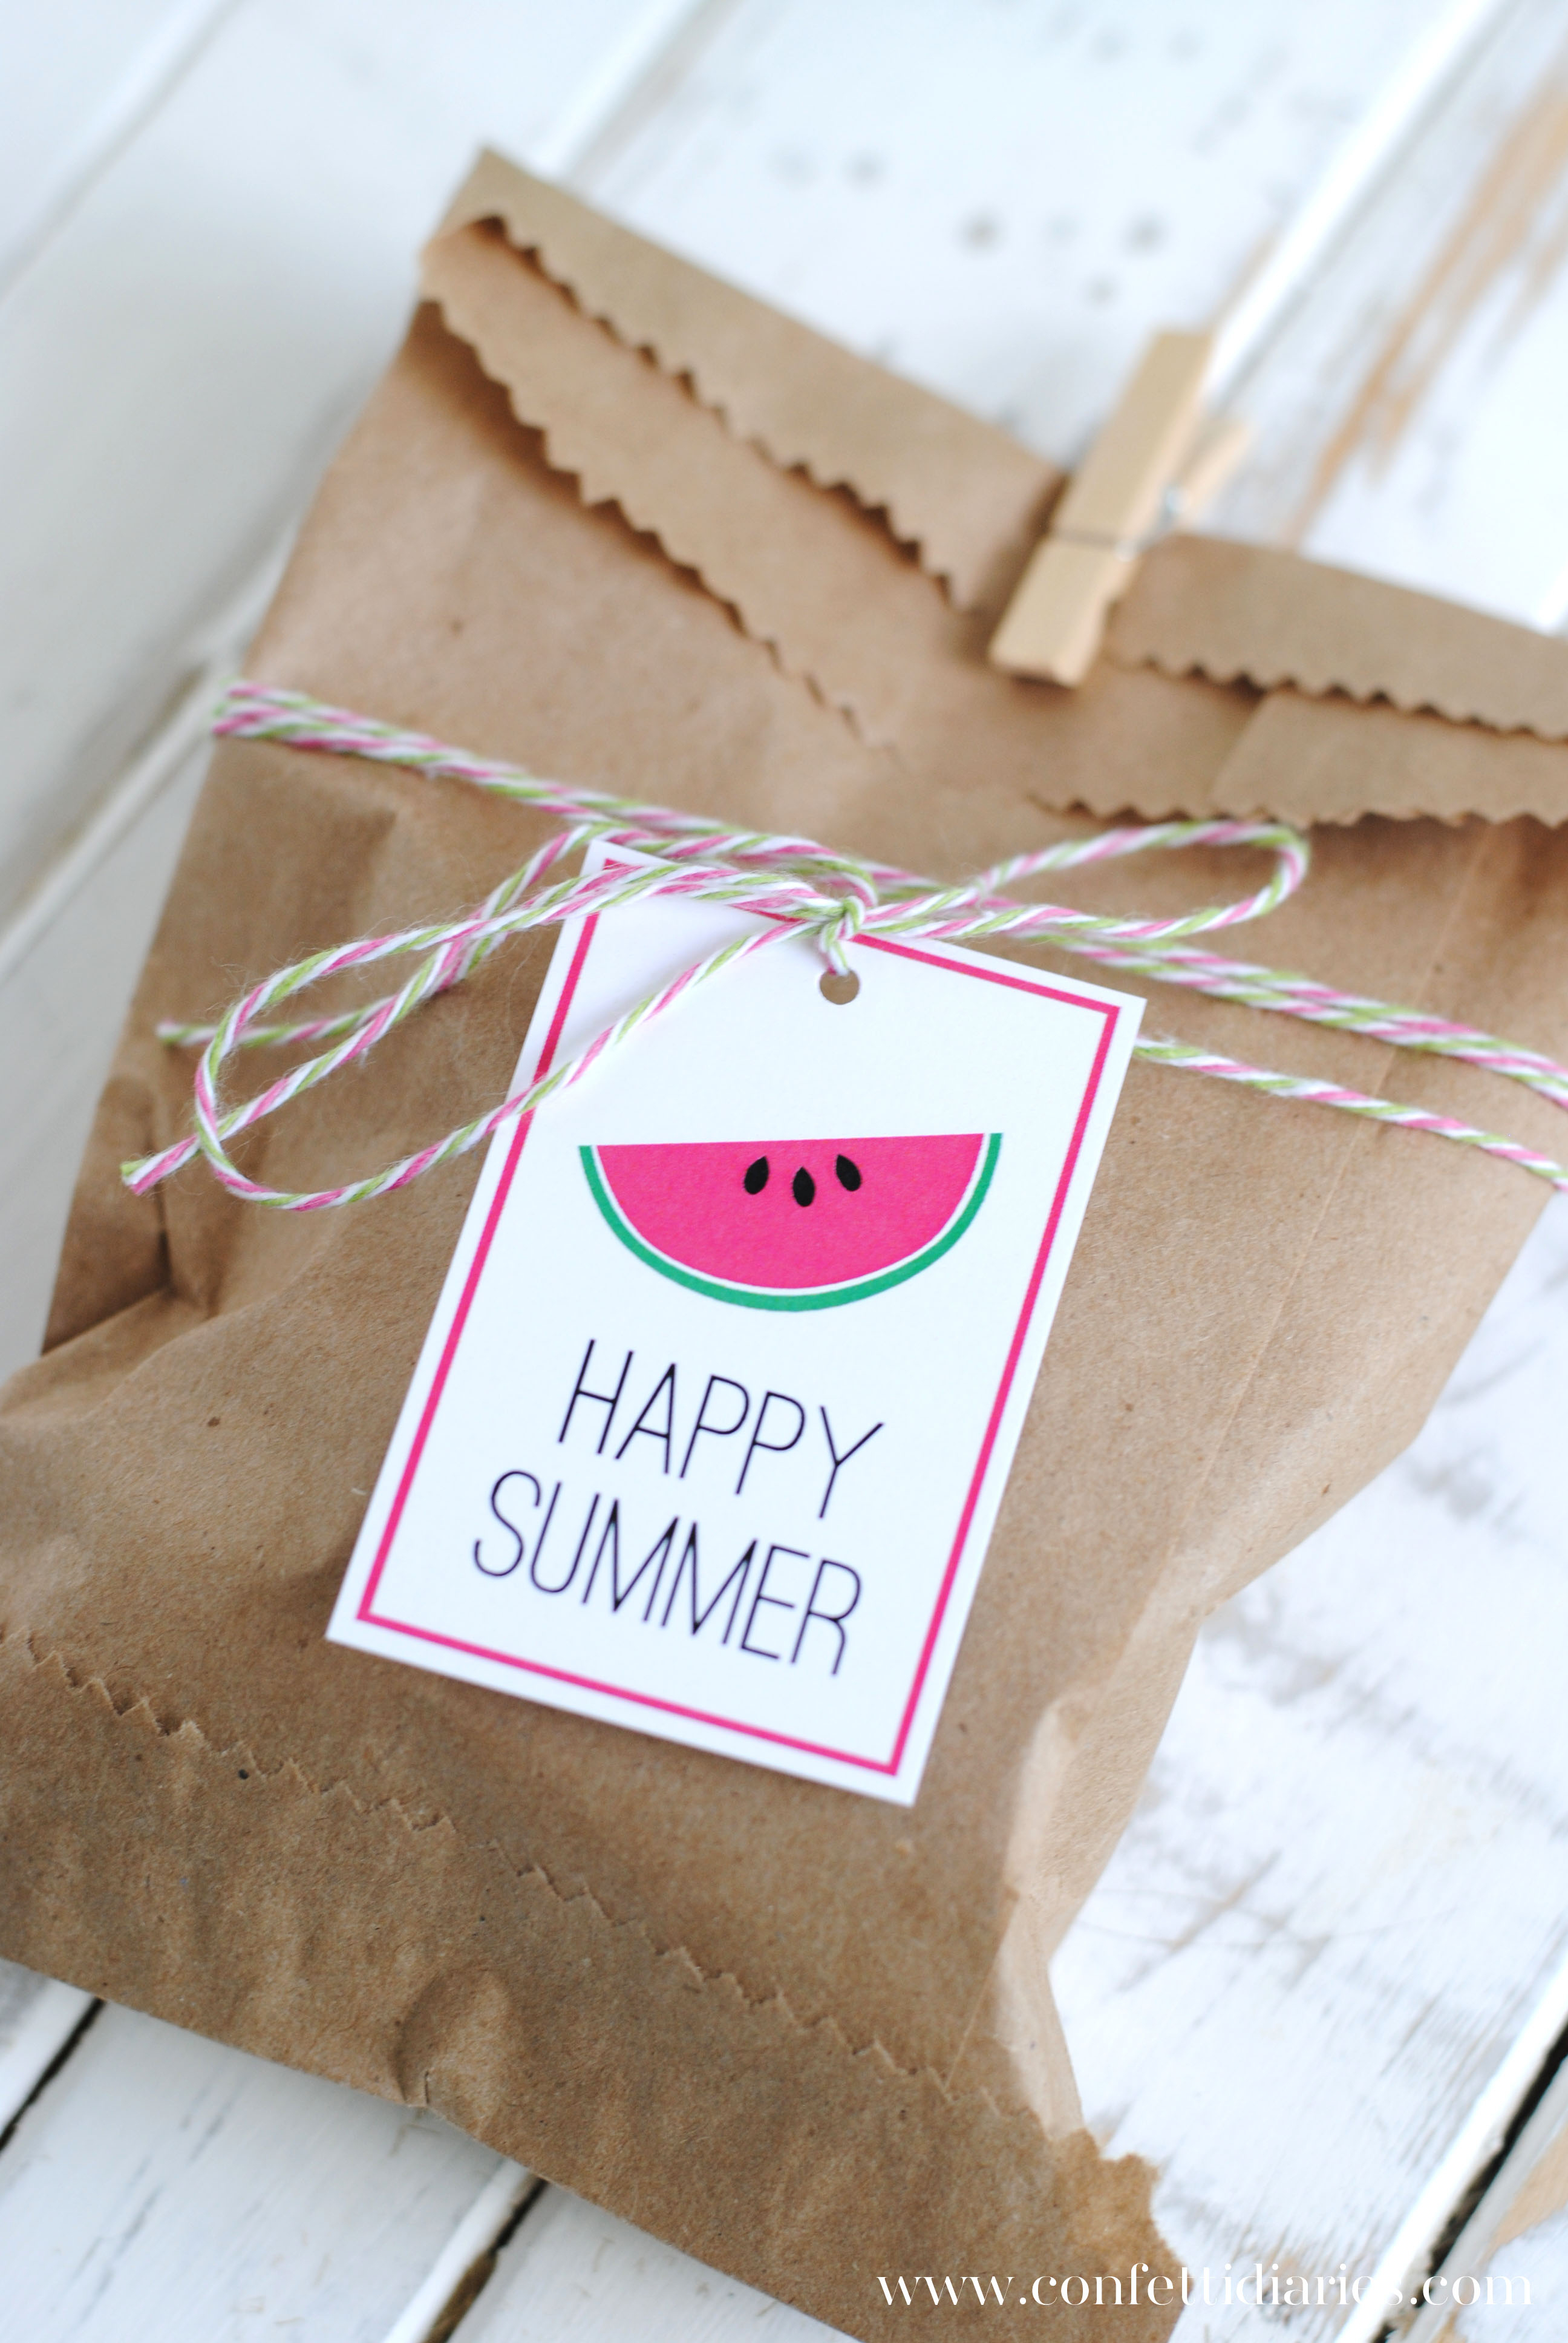 Free Printable Happy Summer Gift Tags - Katarina's Paperie - Free Printable Gift Bag Tags